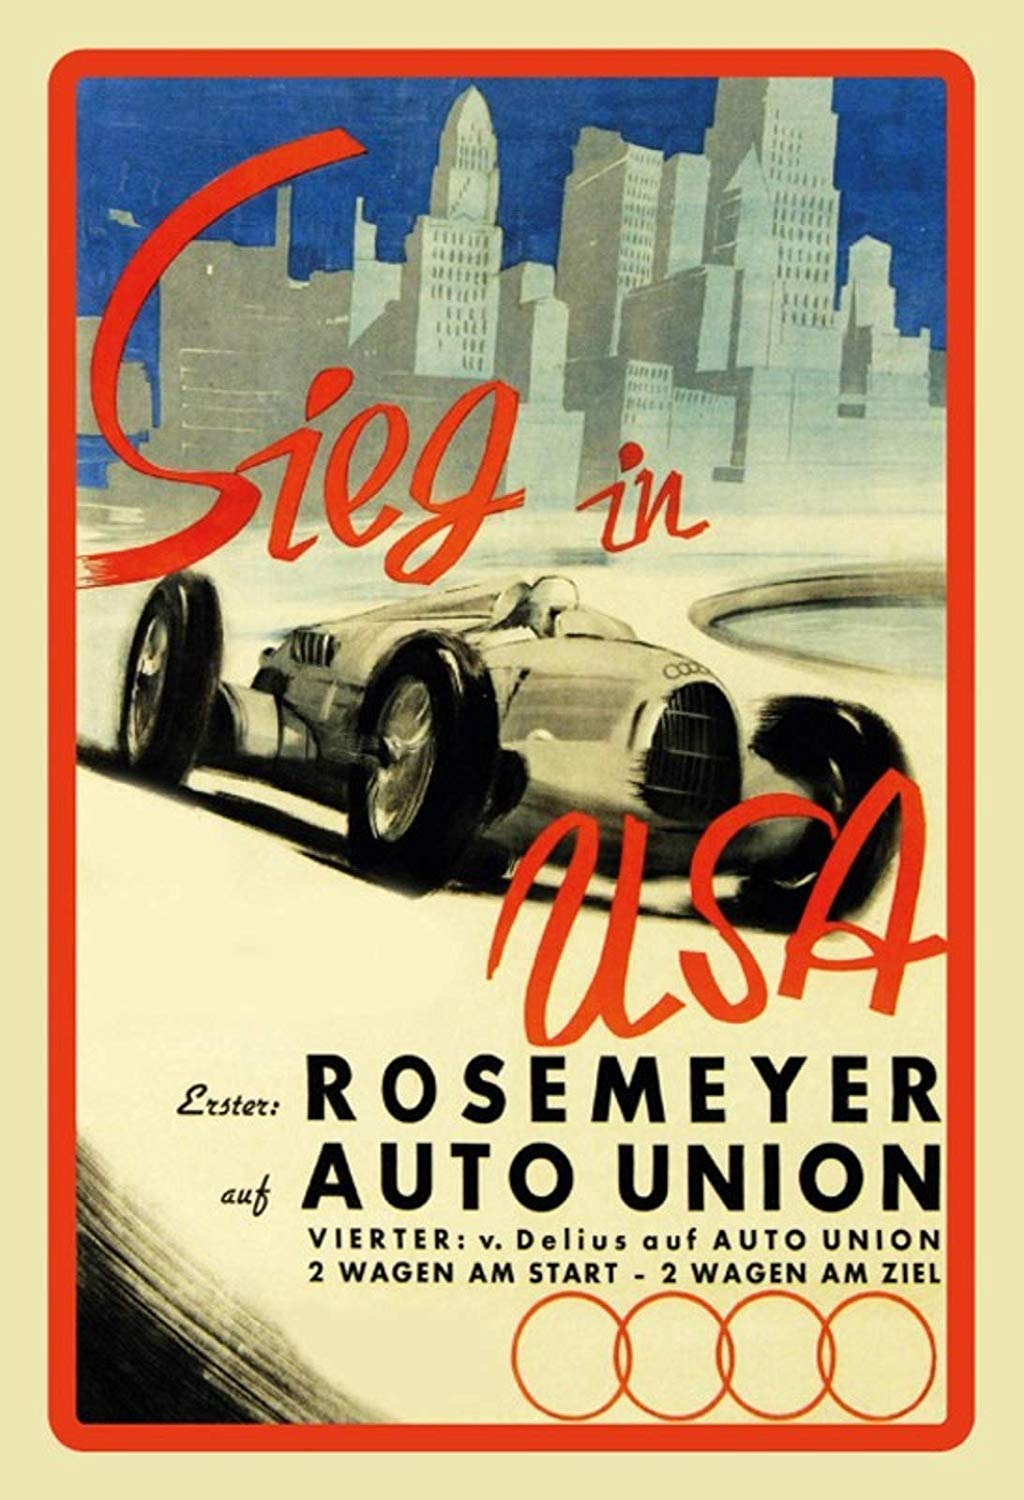 Nololy Sieg In USA Rosemeyer Union Cartel De Chapa Póster De ...